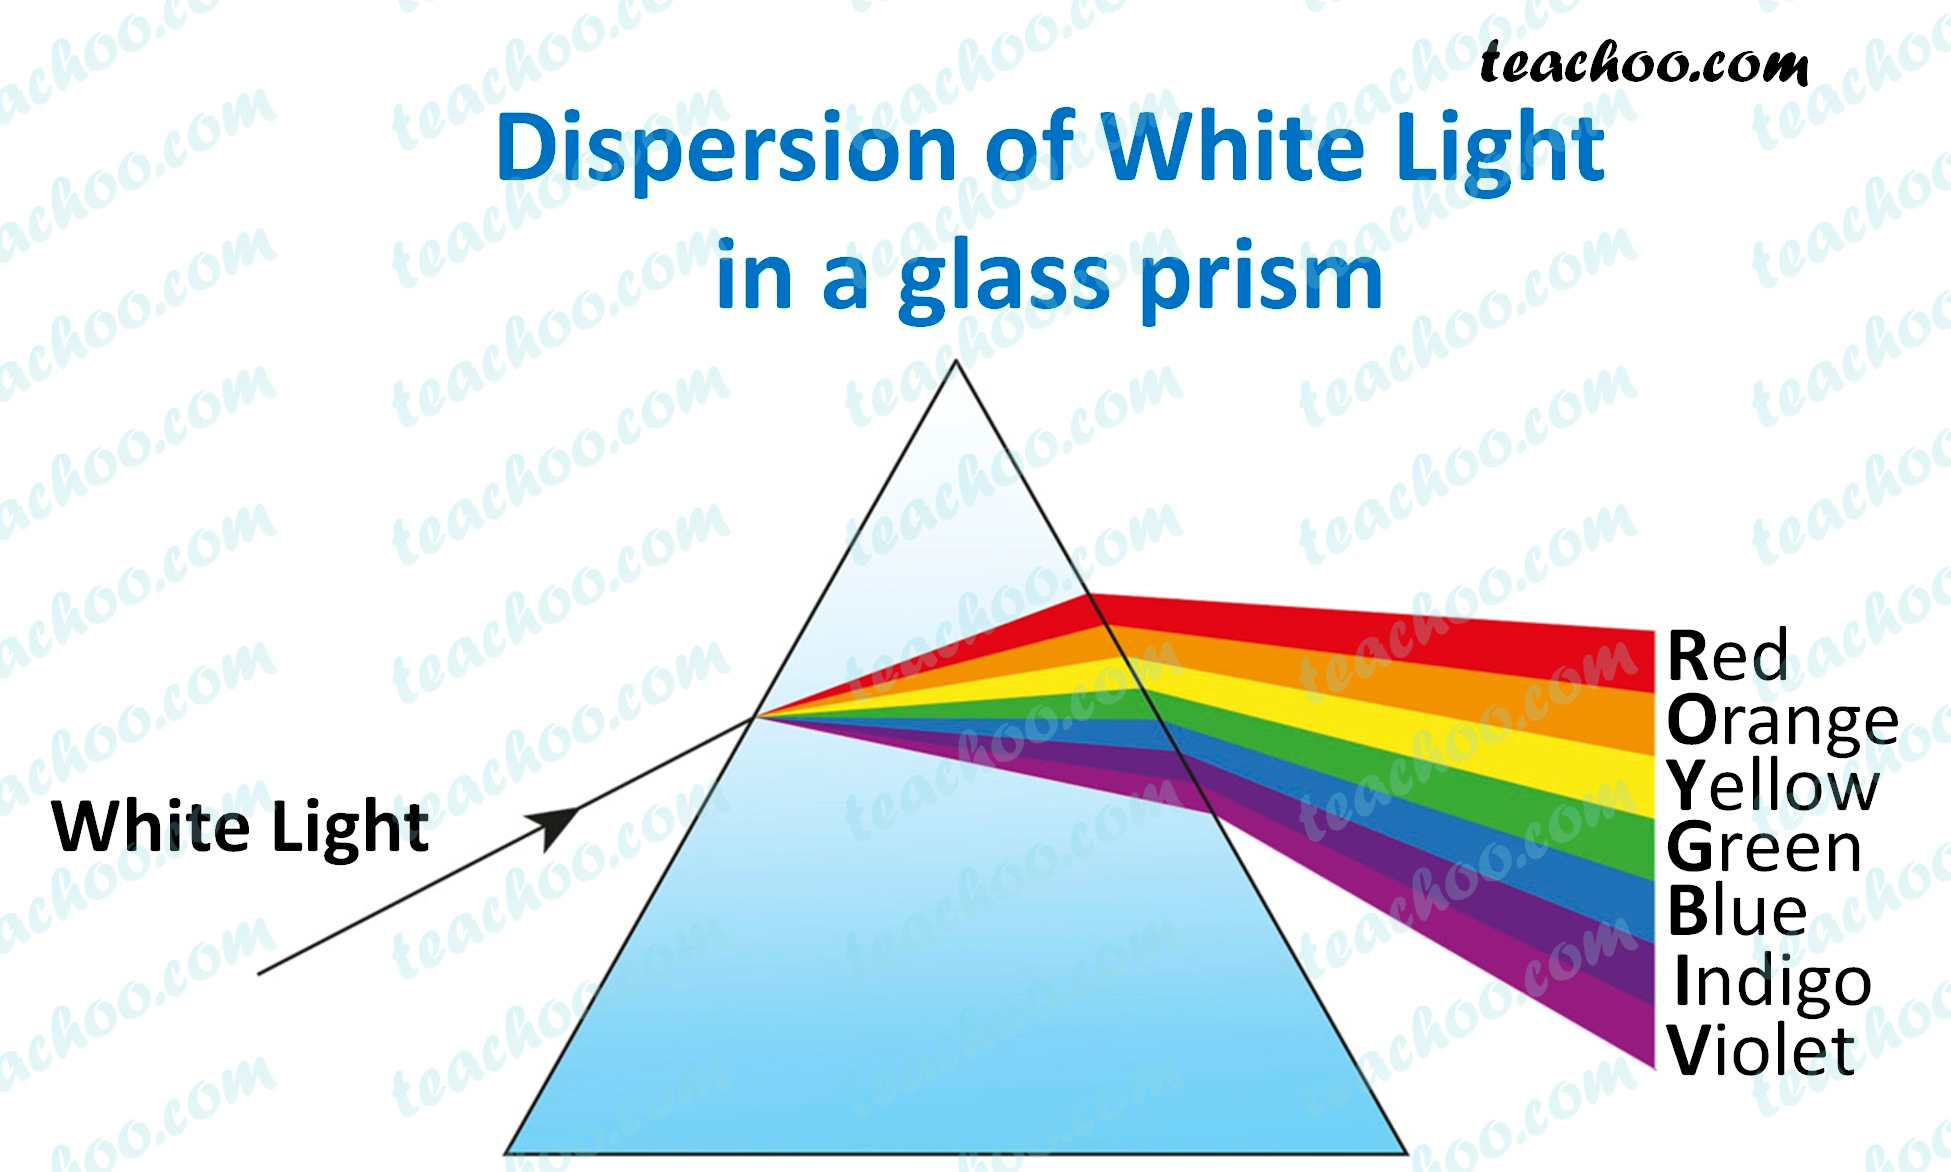 dispersion-of-white-light-in-glass-prism---teachoo.jpg